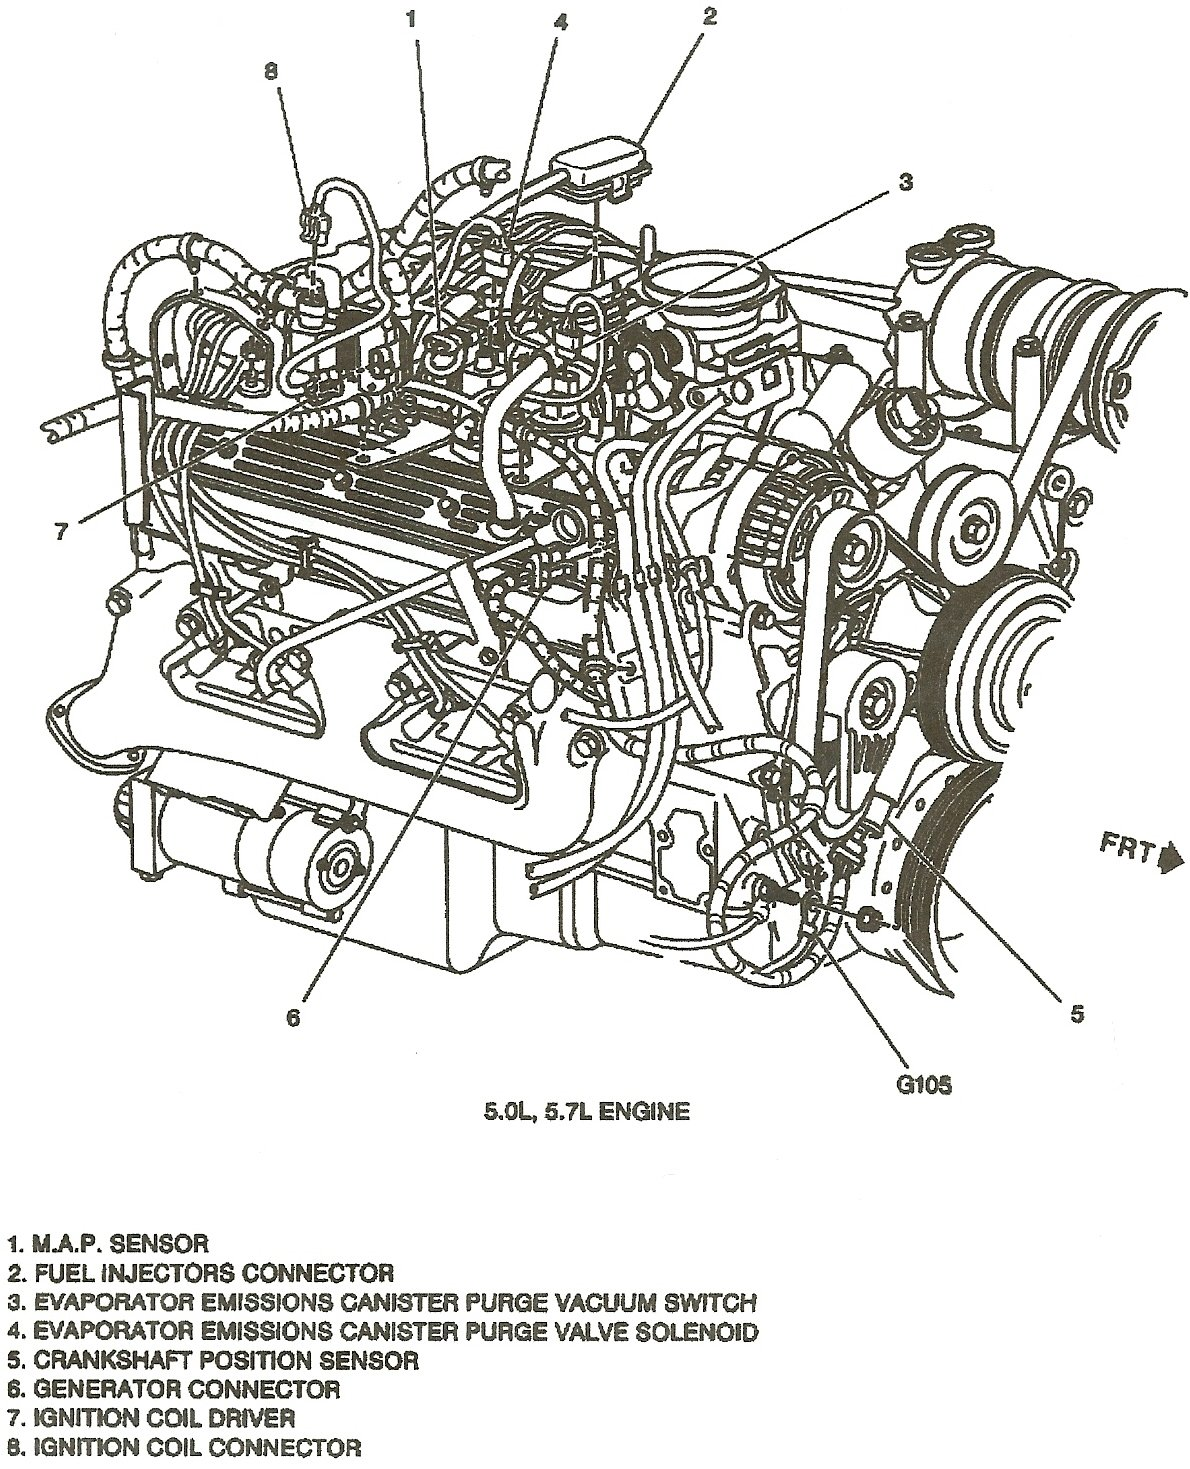 gmc sierra 1500 wiring diagram i have a 1996 gmc sierra 1500 series and today i was ...